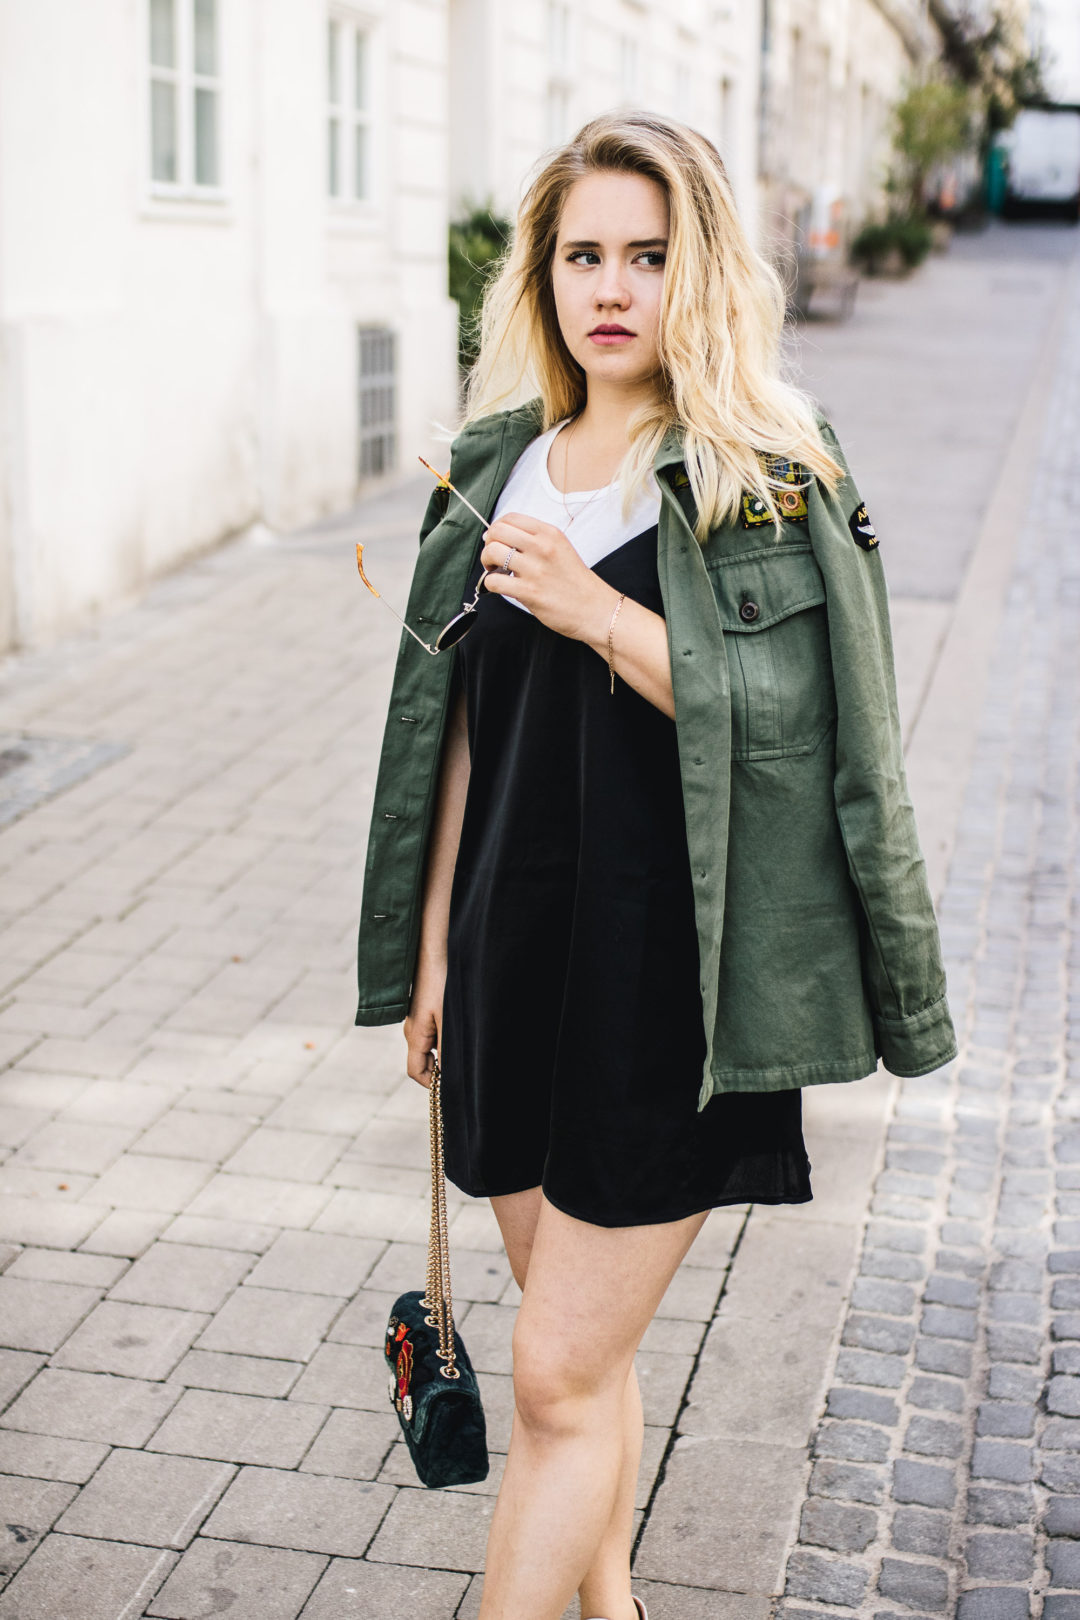 Sosodaily Fleamarket: Army Jacket | Love Daily Dose